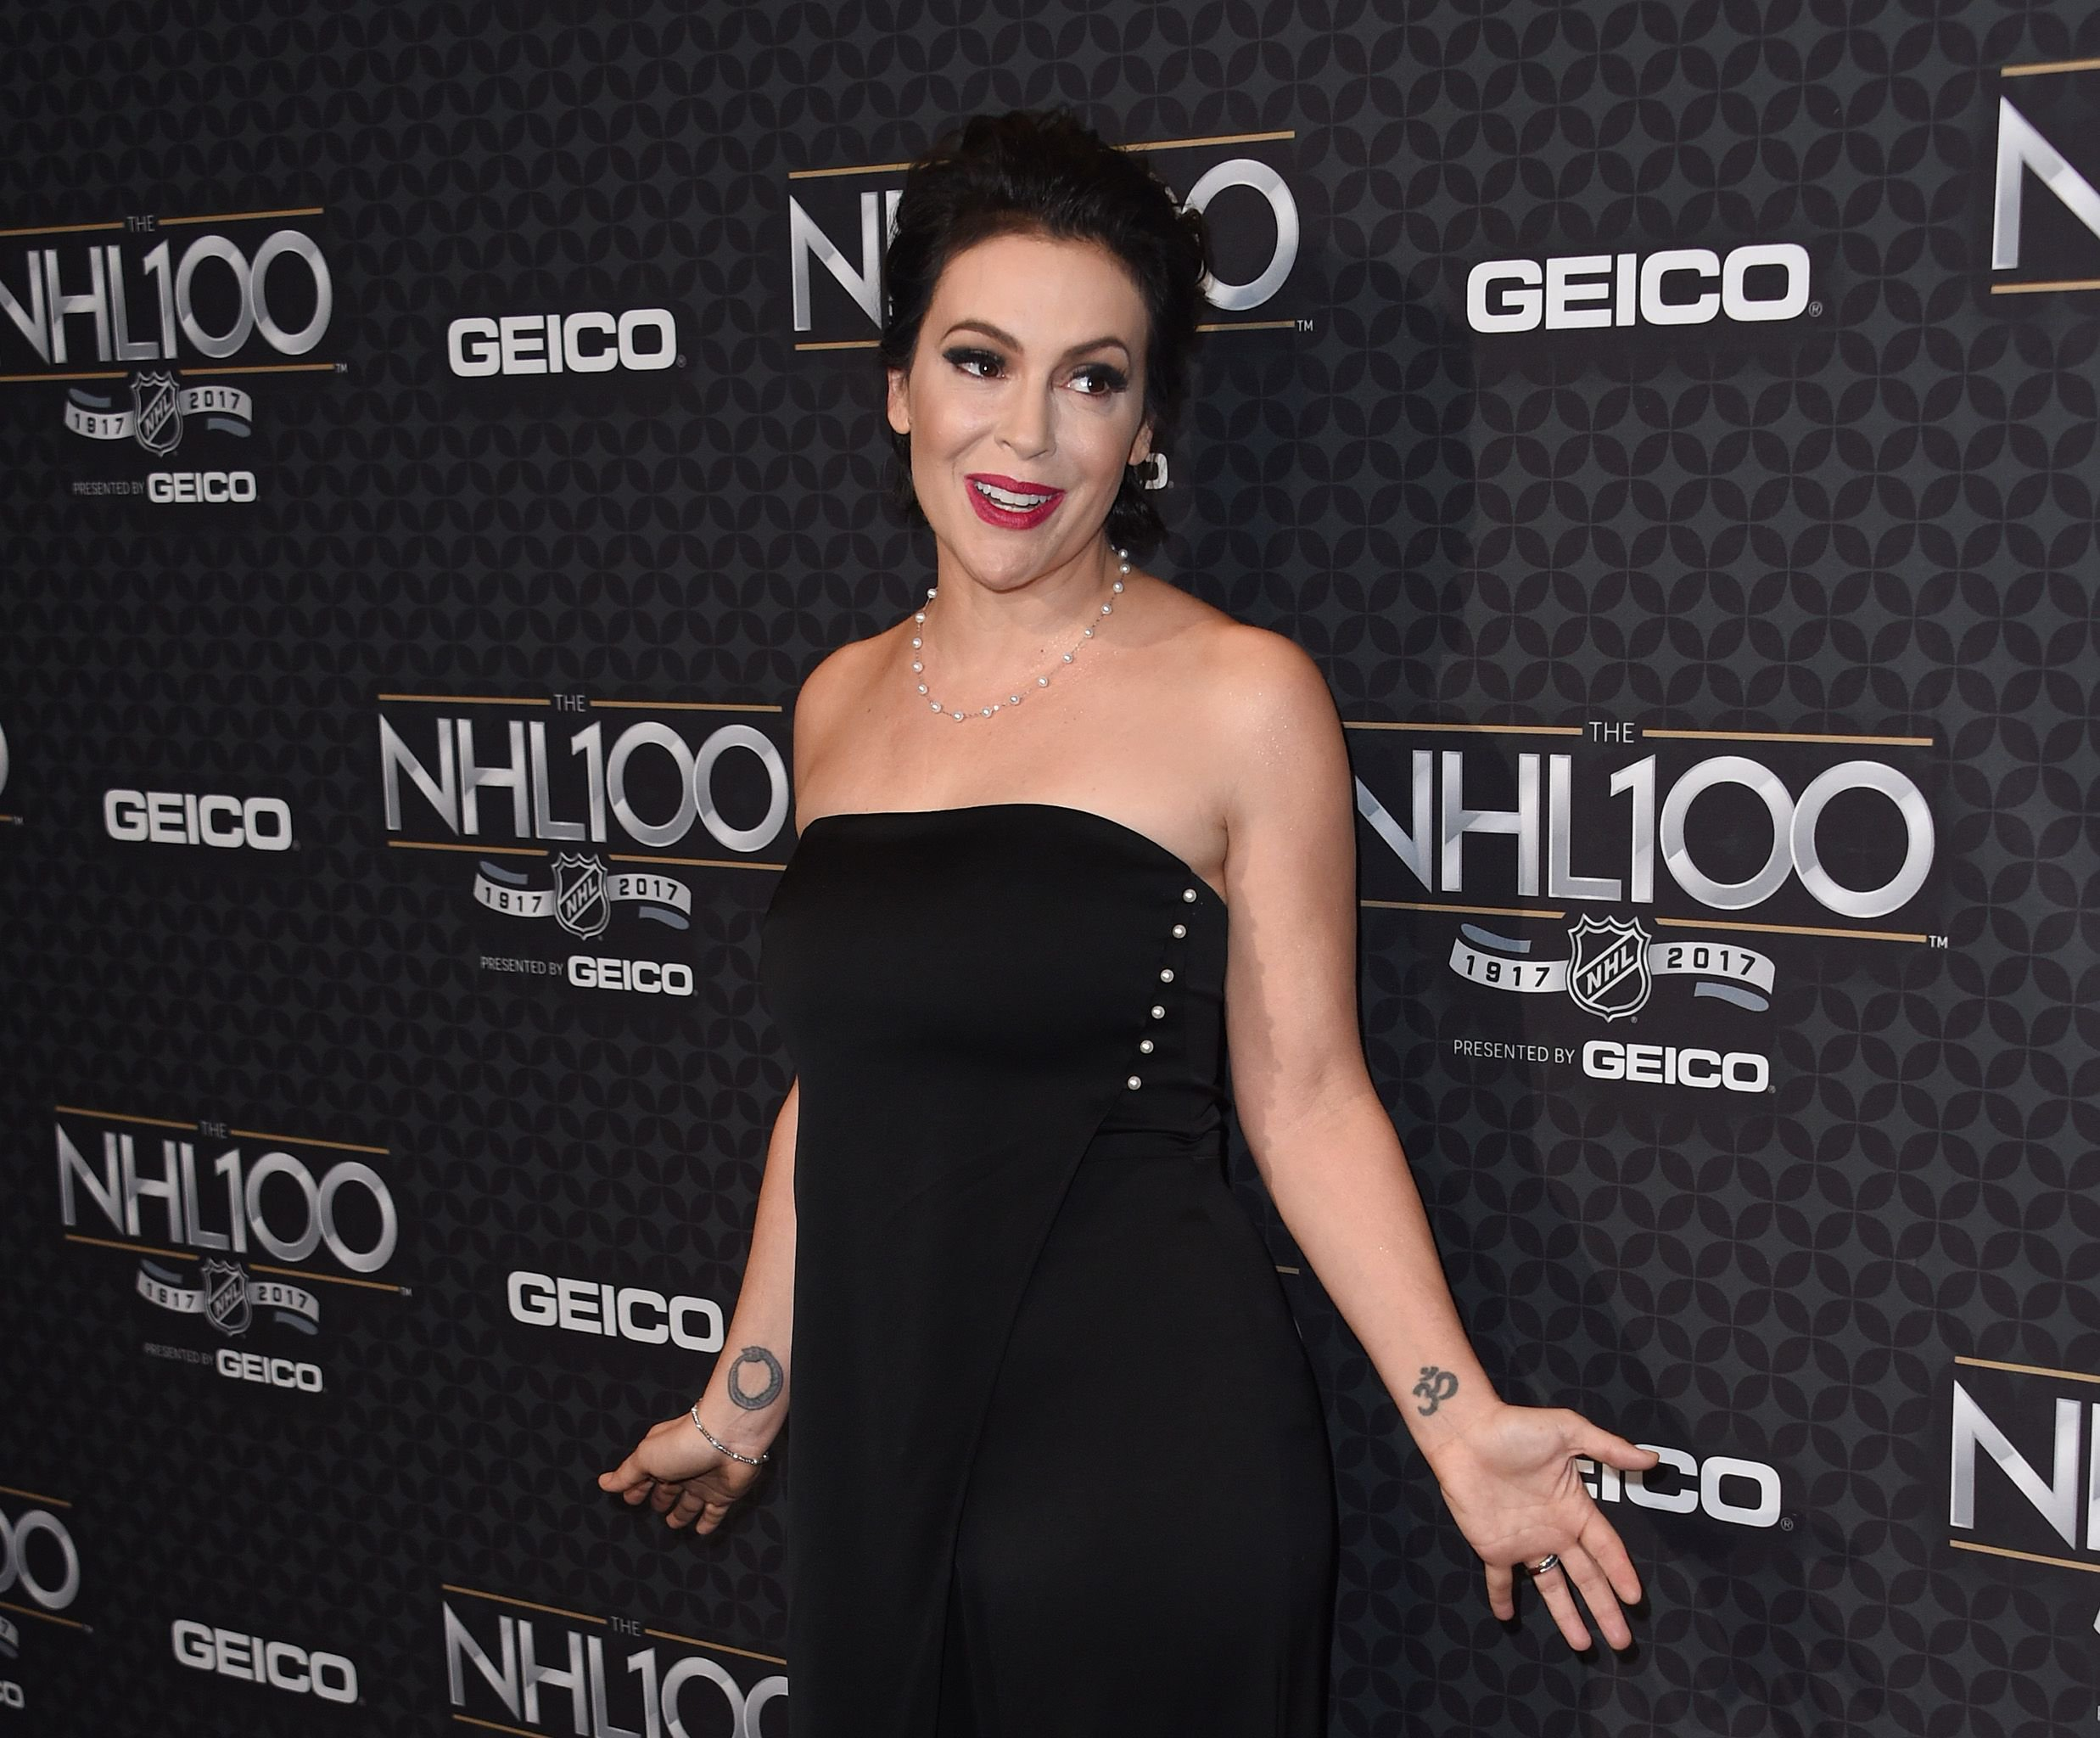 Alyssa Milano aims to expose 'magnitude' of sexual assault and harassment with #MeToo